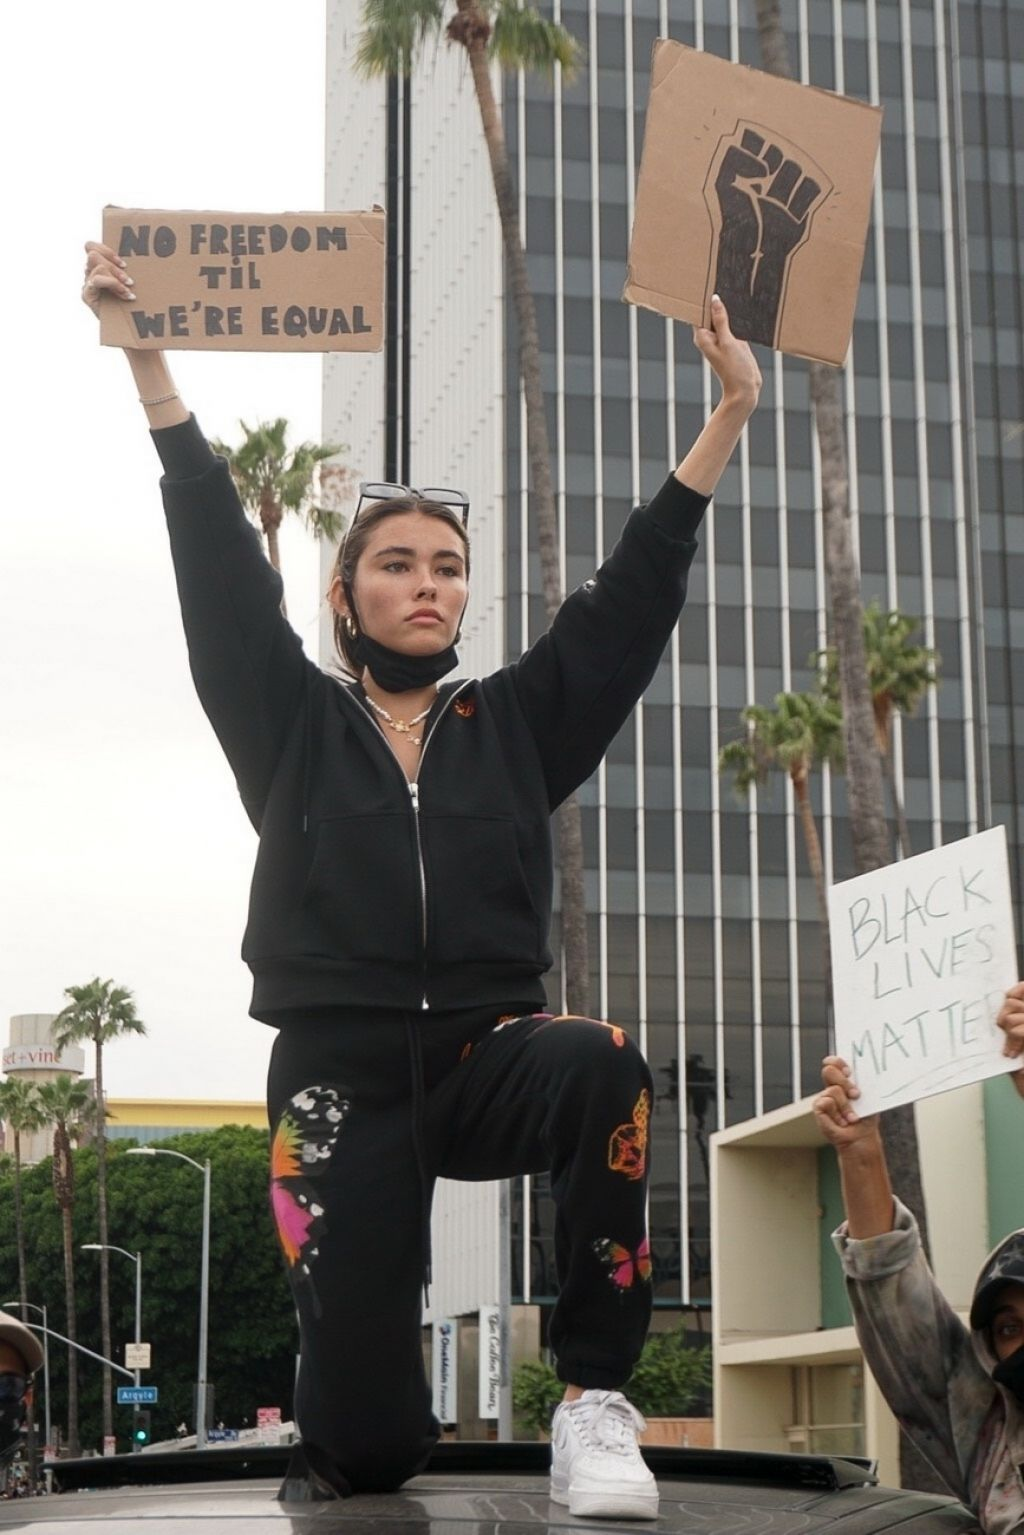 Madison Beer - Protesting in Hollywood 06/01/2020 • CelebMafia